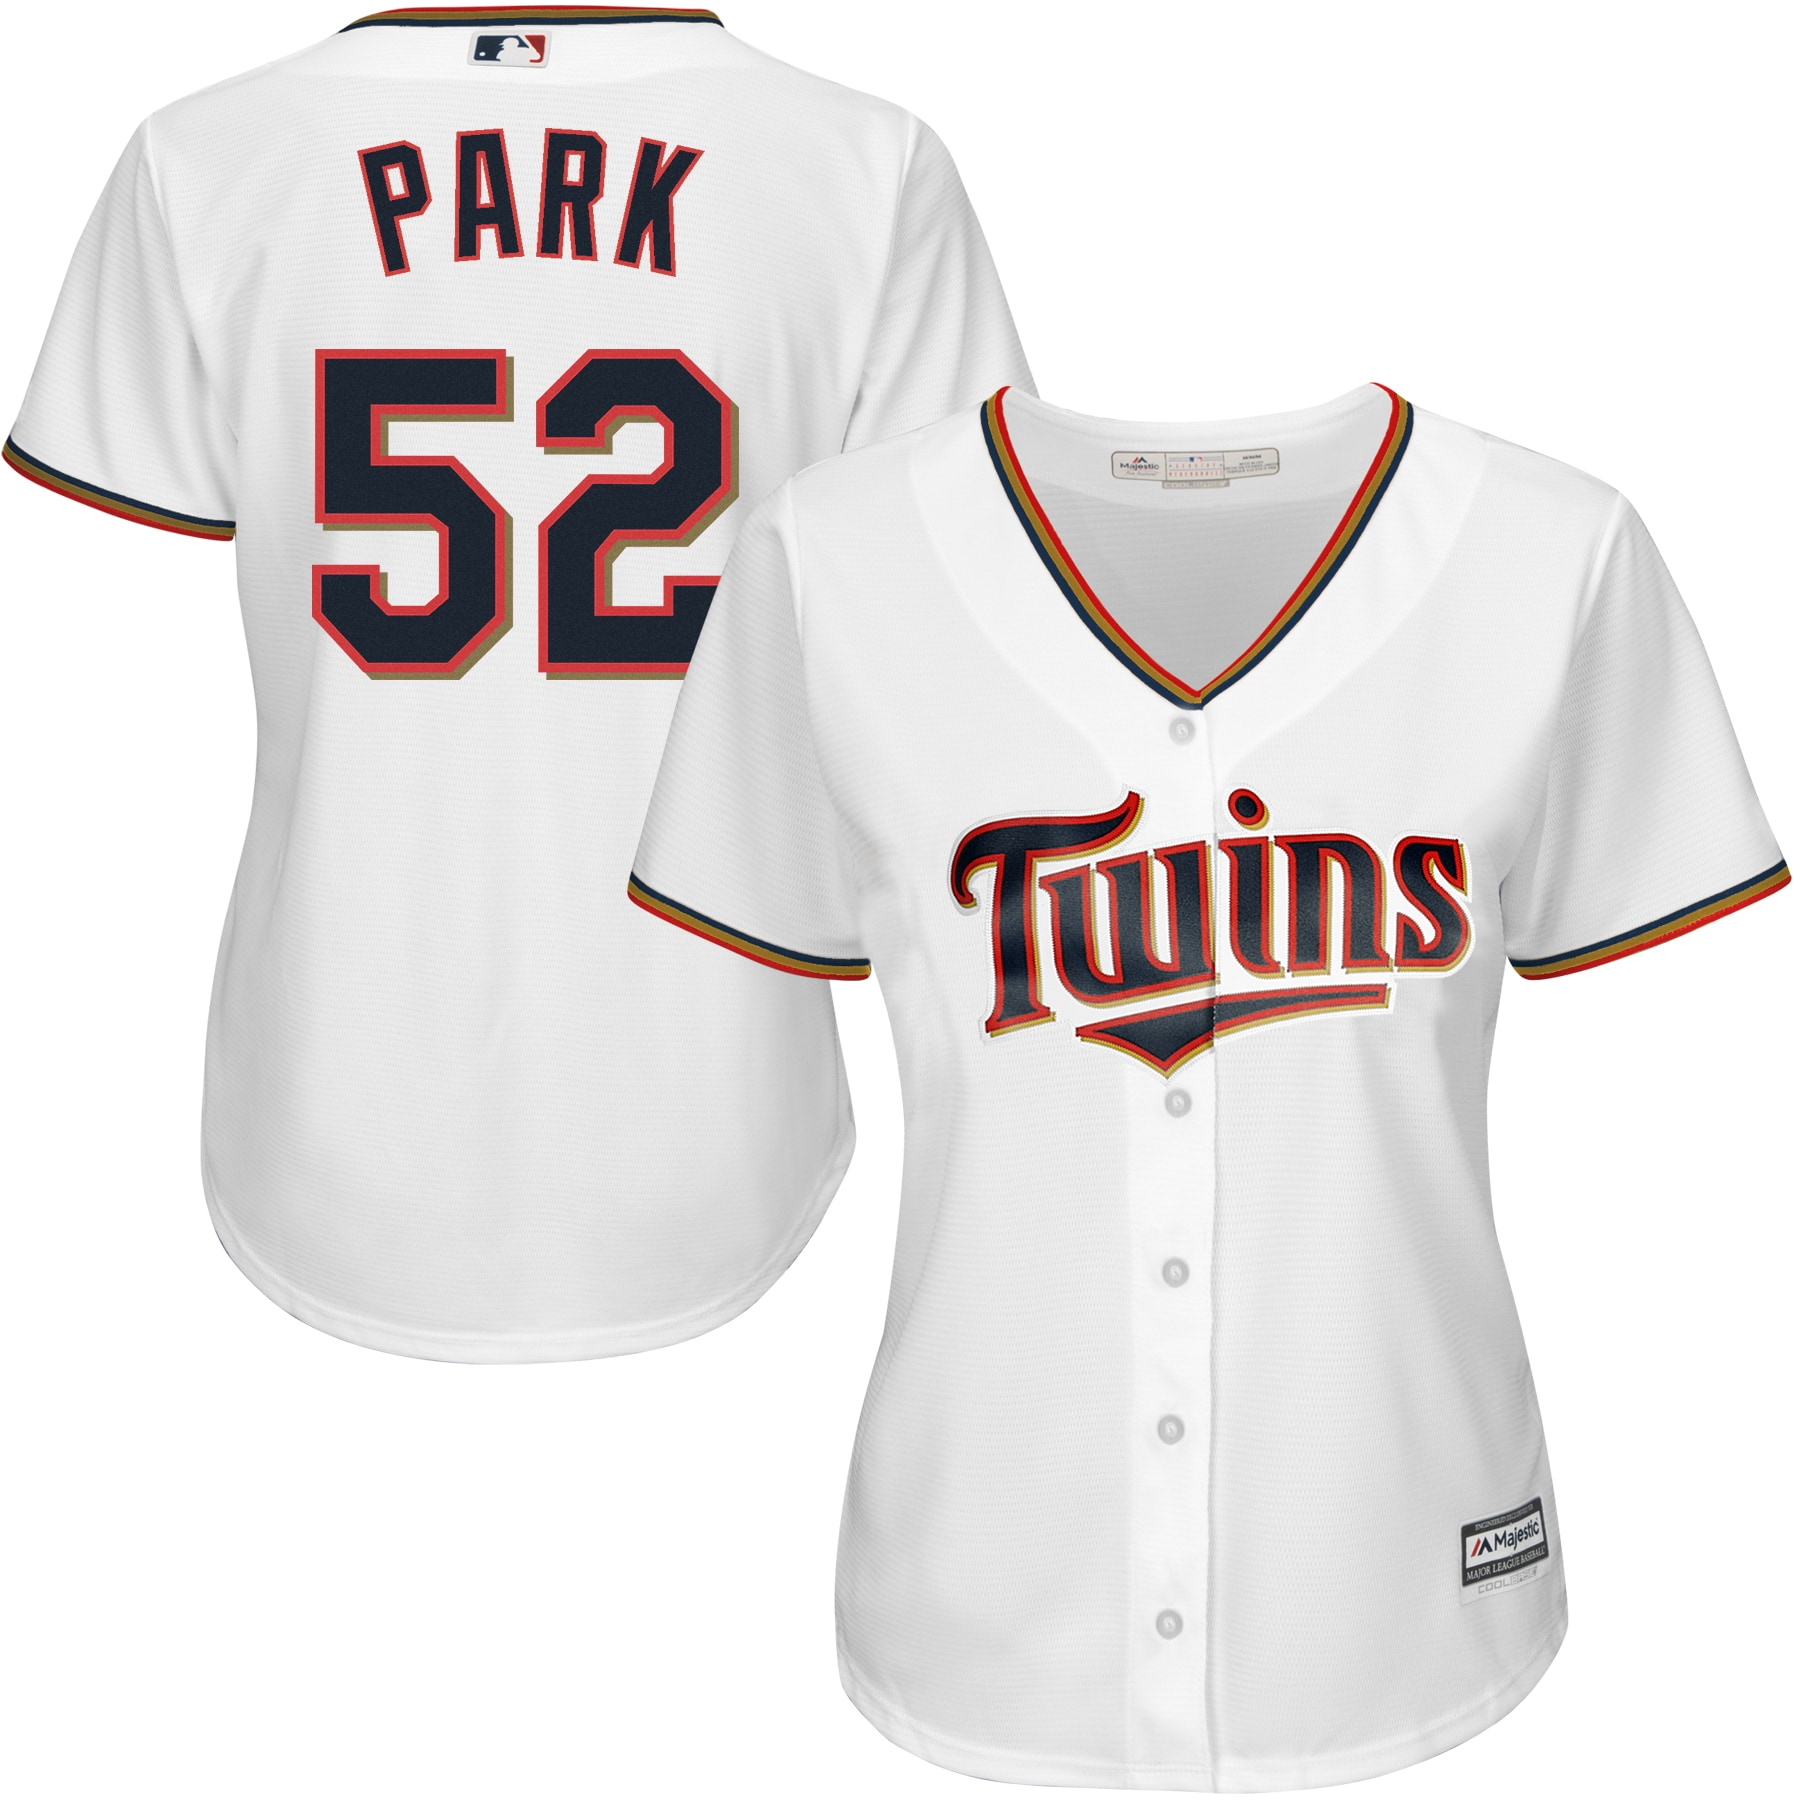 Byung-ho Park Minnesota Twins Majestic Women's Home Cool Base Player Jersey - White